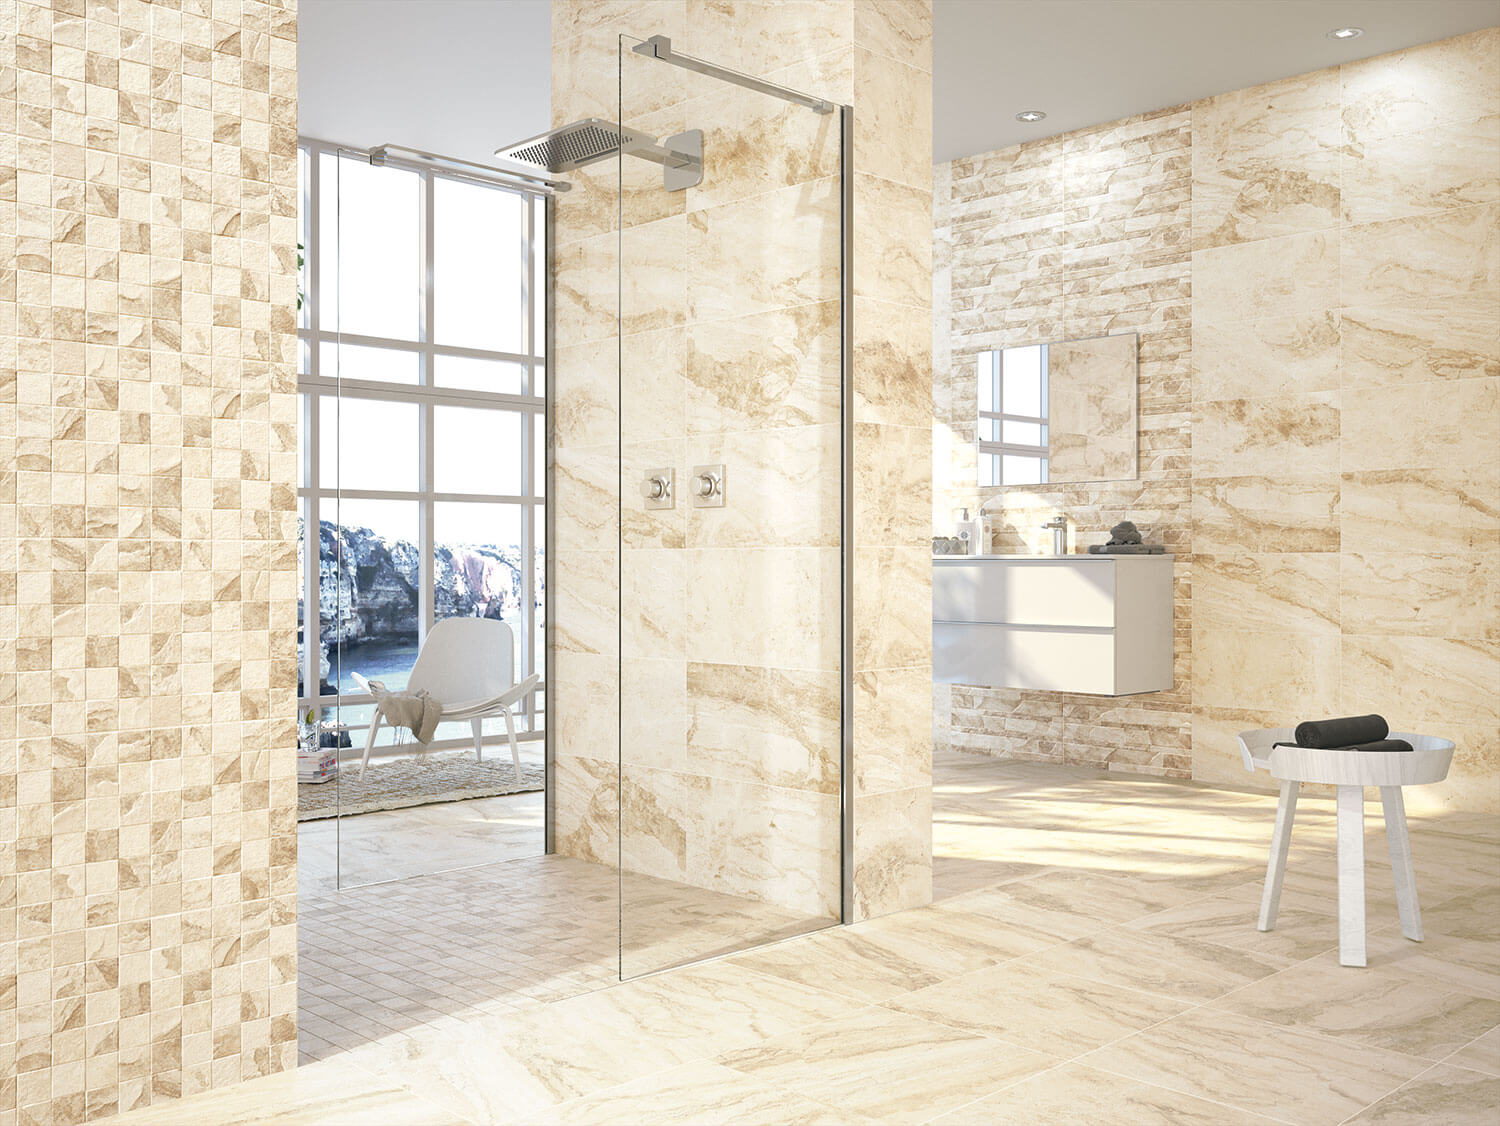 Best Selling Wall Tiles Kitchen Wall Tiles Bathroom